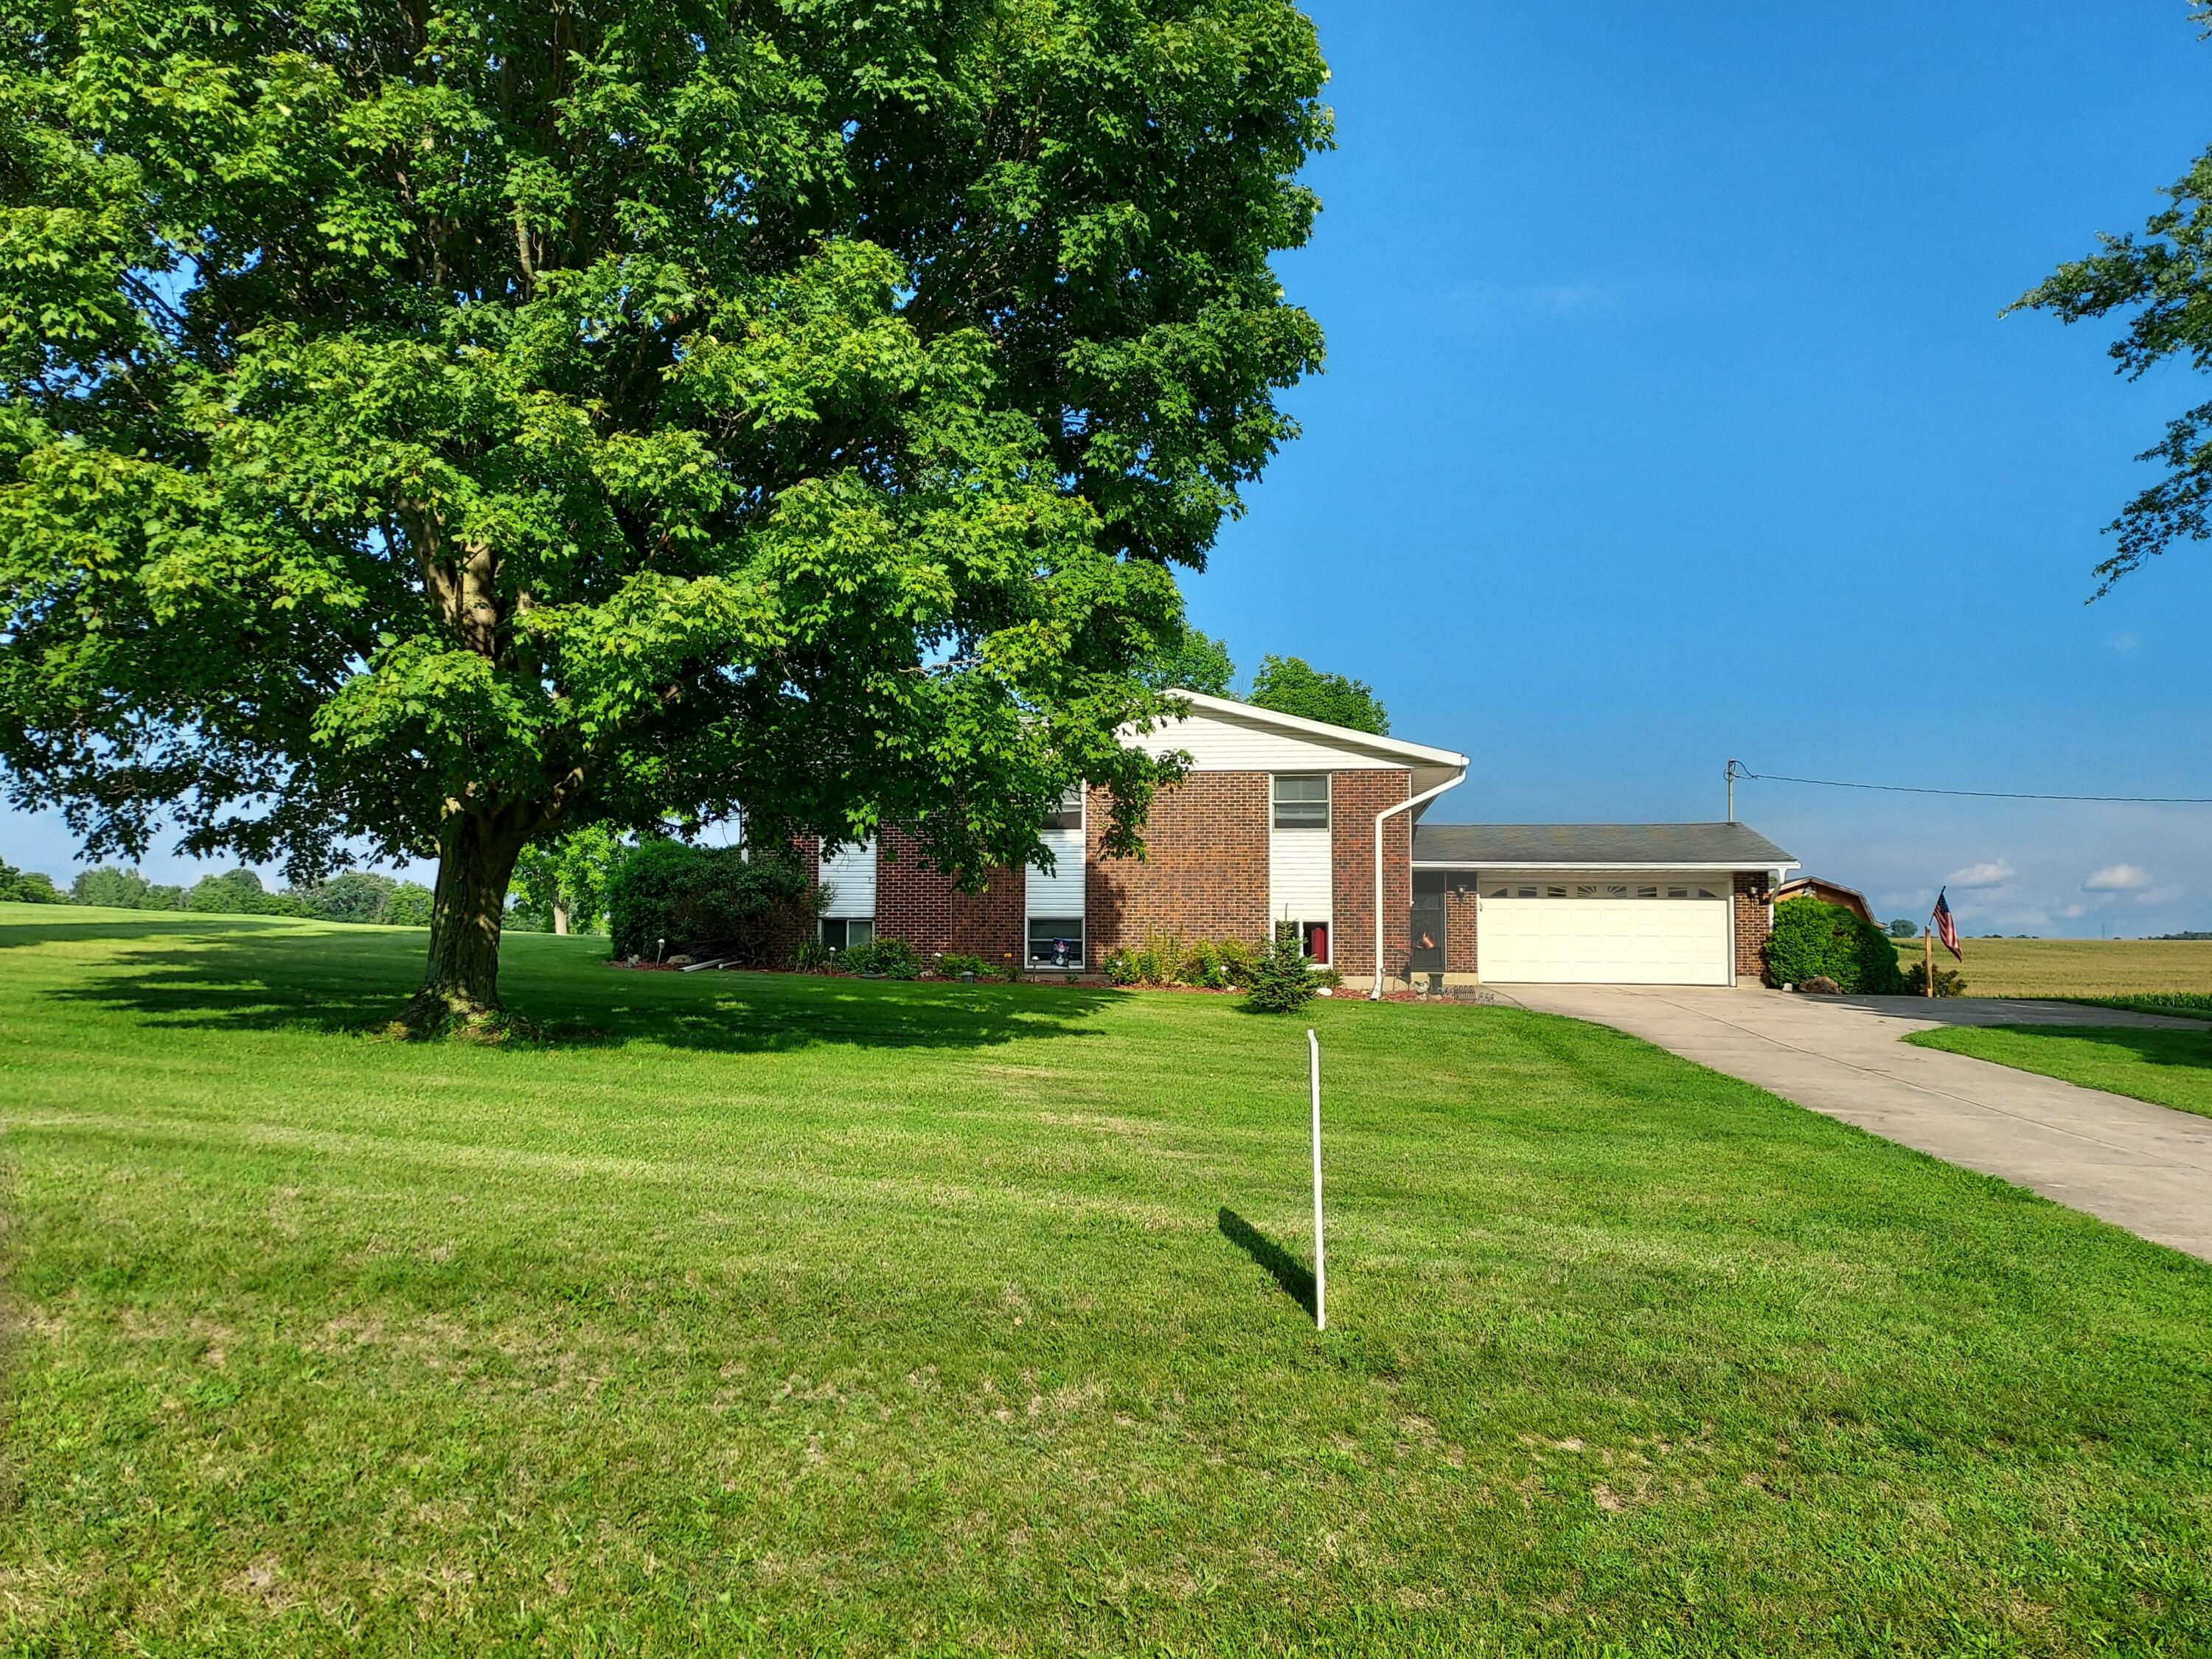 Photo 1 for 3770 Dolly Varden Rd South Charleston, OH 45368